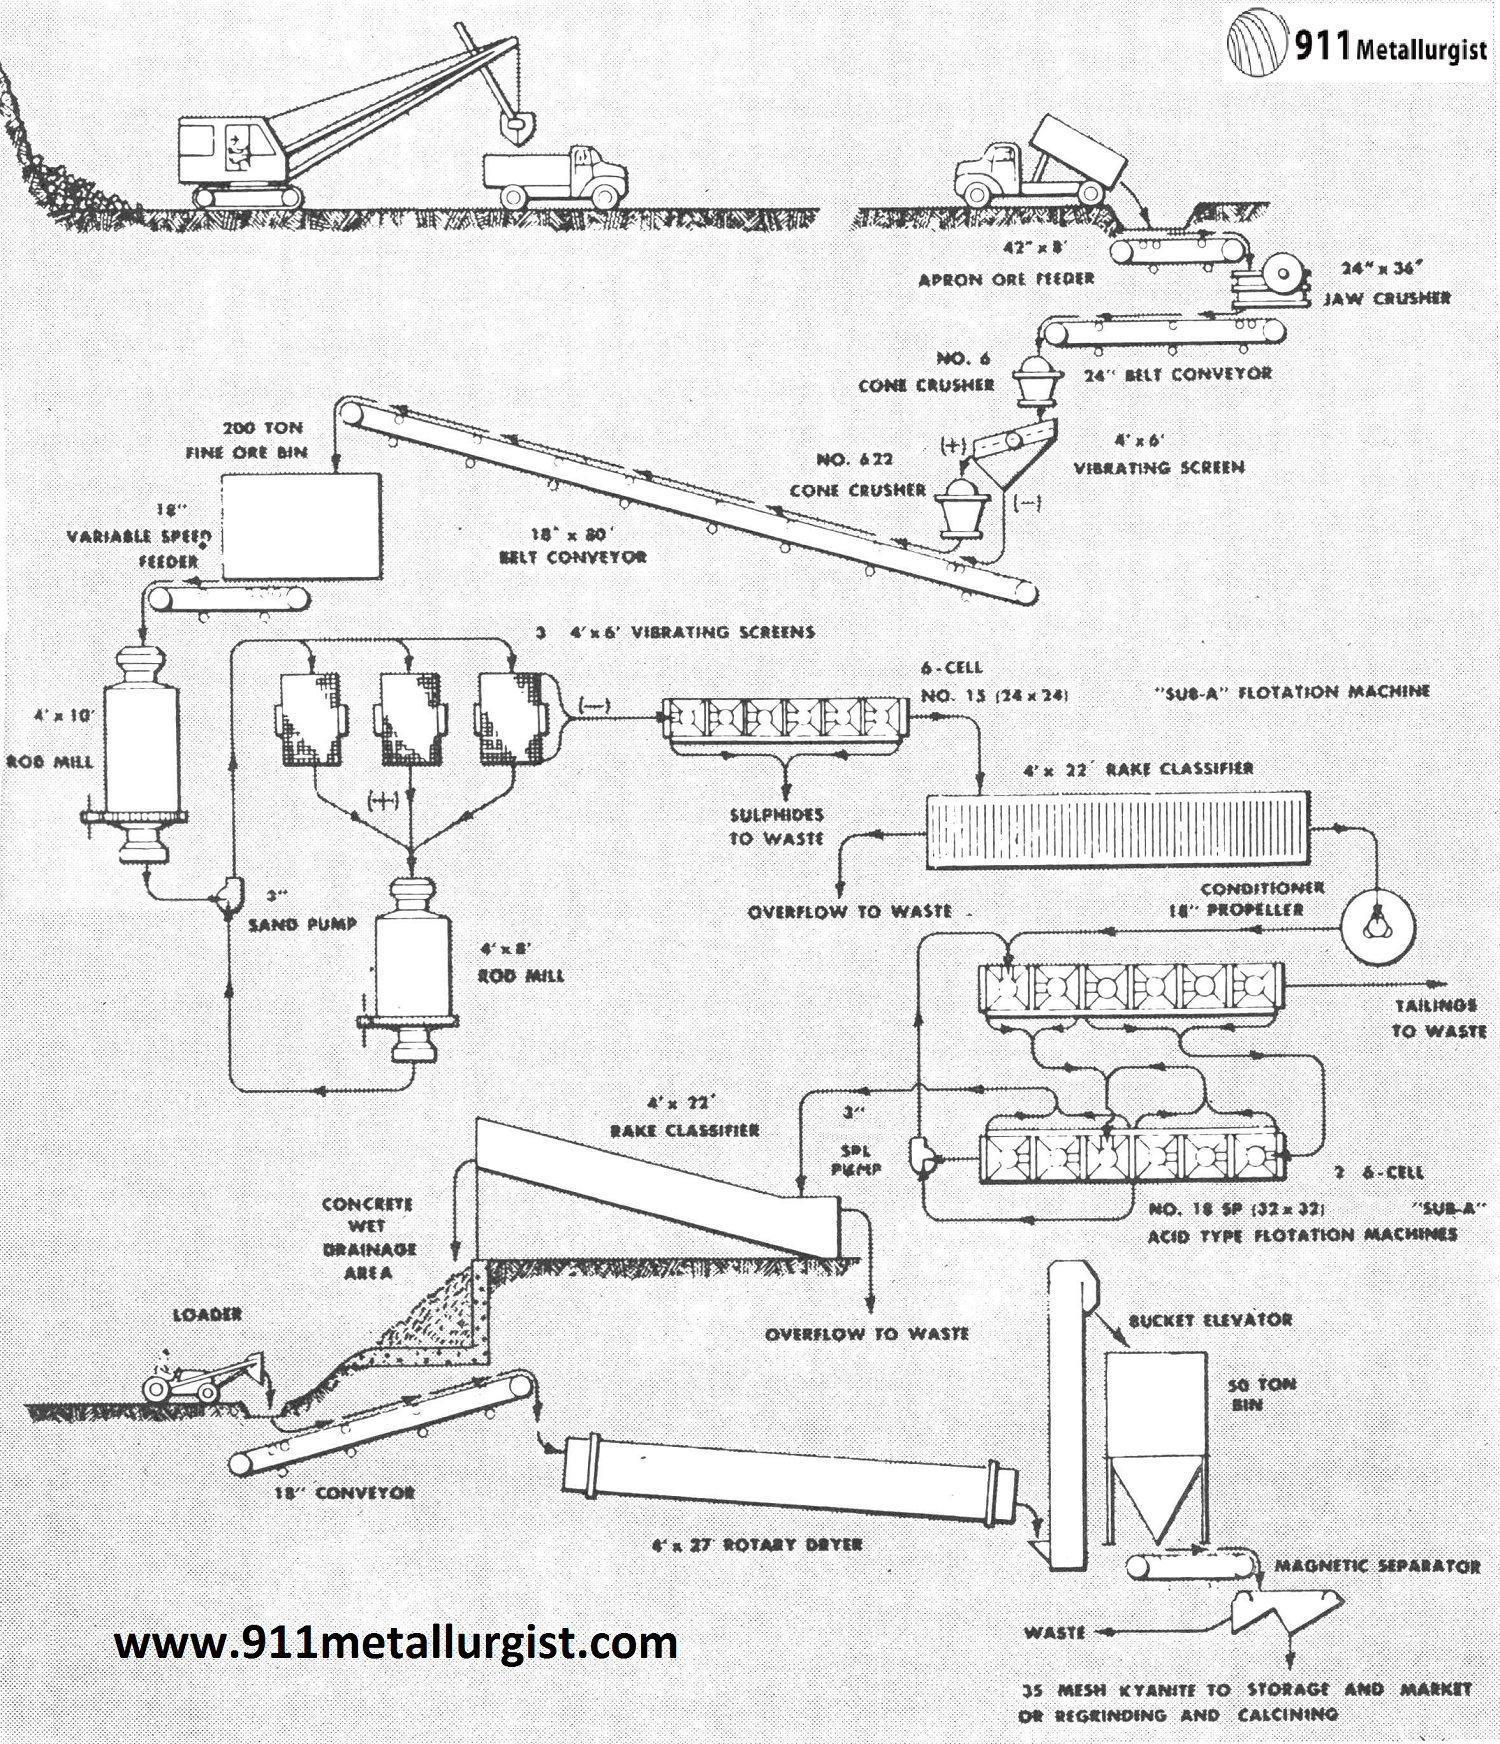 Kyanite And Sillimanite Beneficiation Process